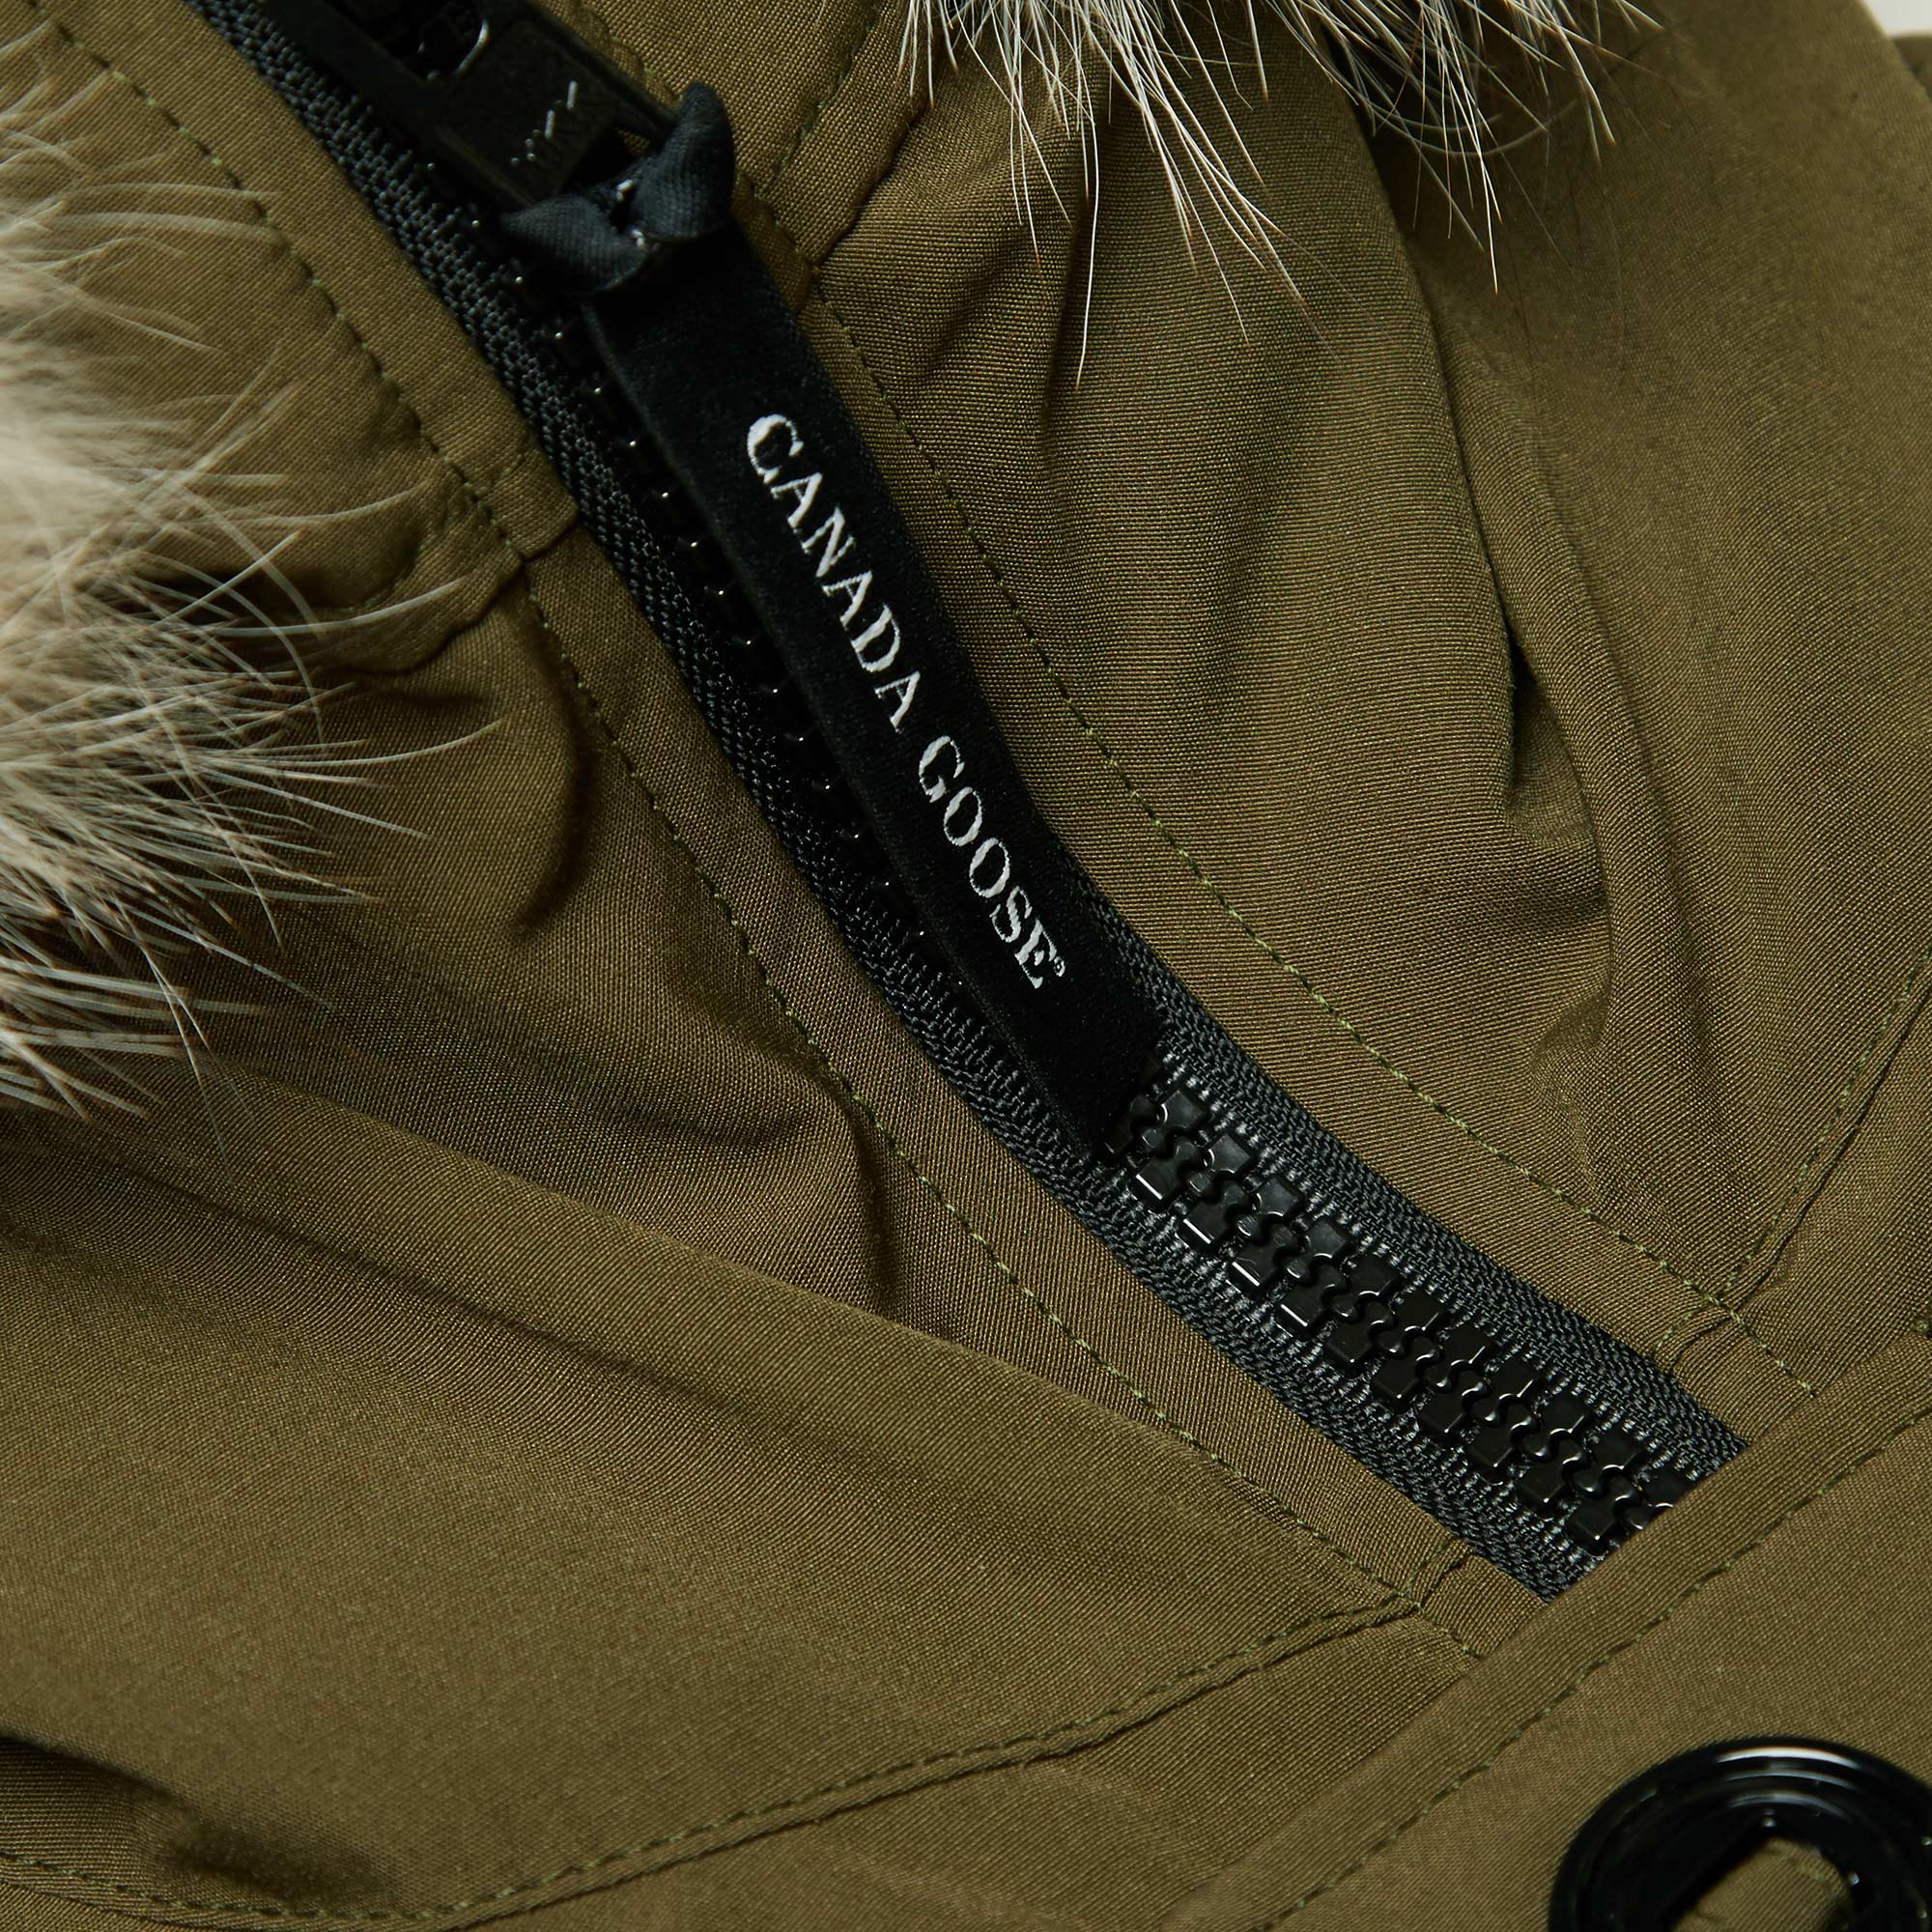 Canada Goose down sale price - Graceful Canada Goose Mystique Parka France Free Shipping Worldwide